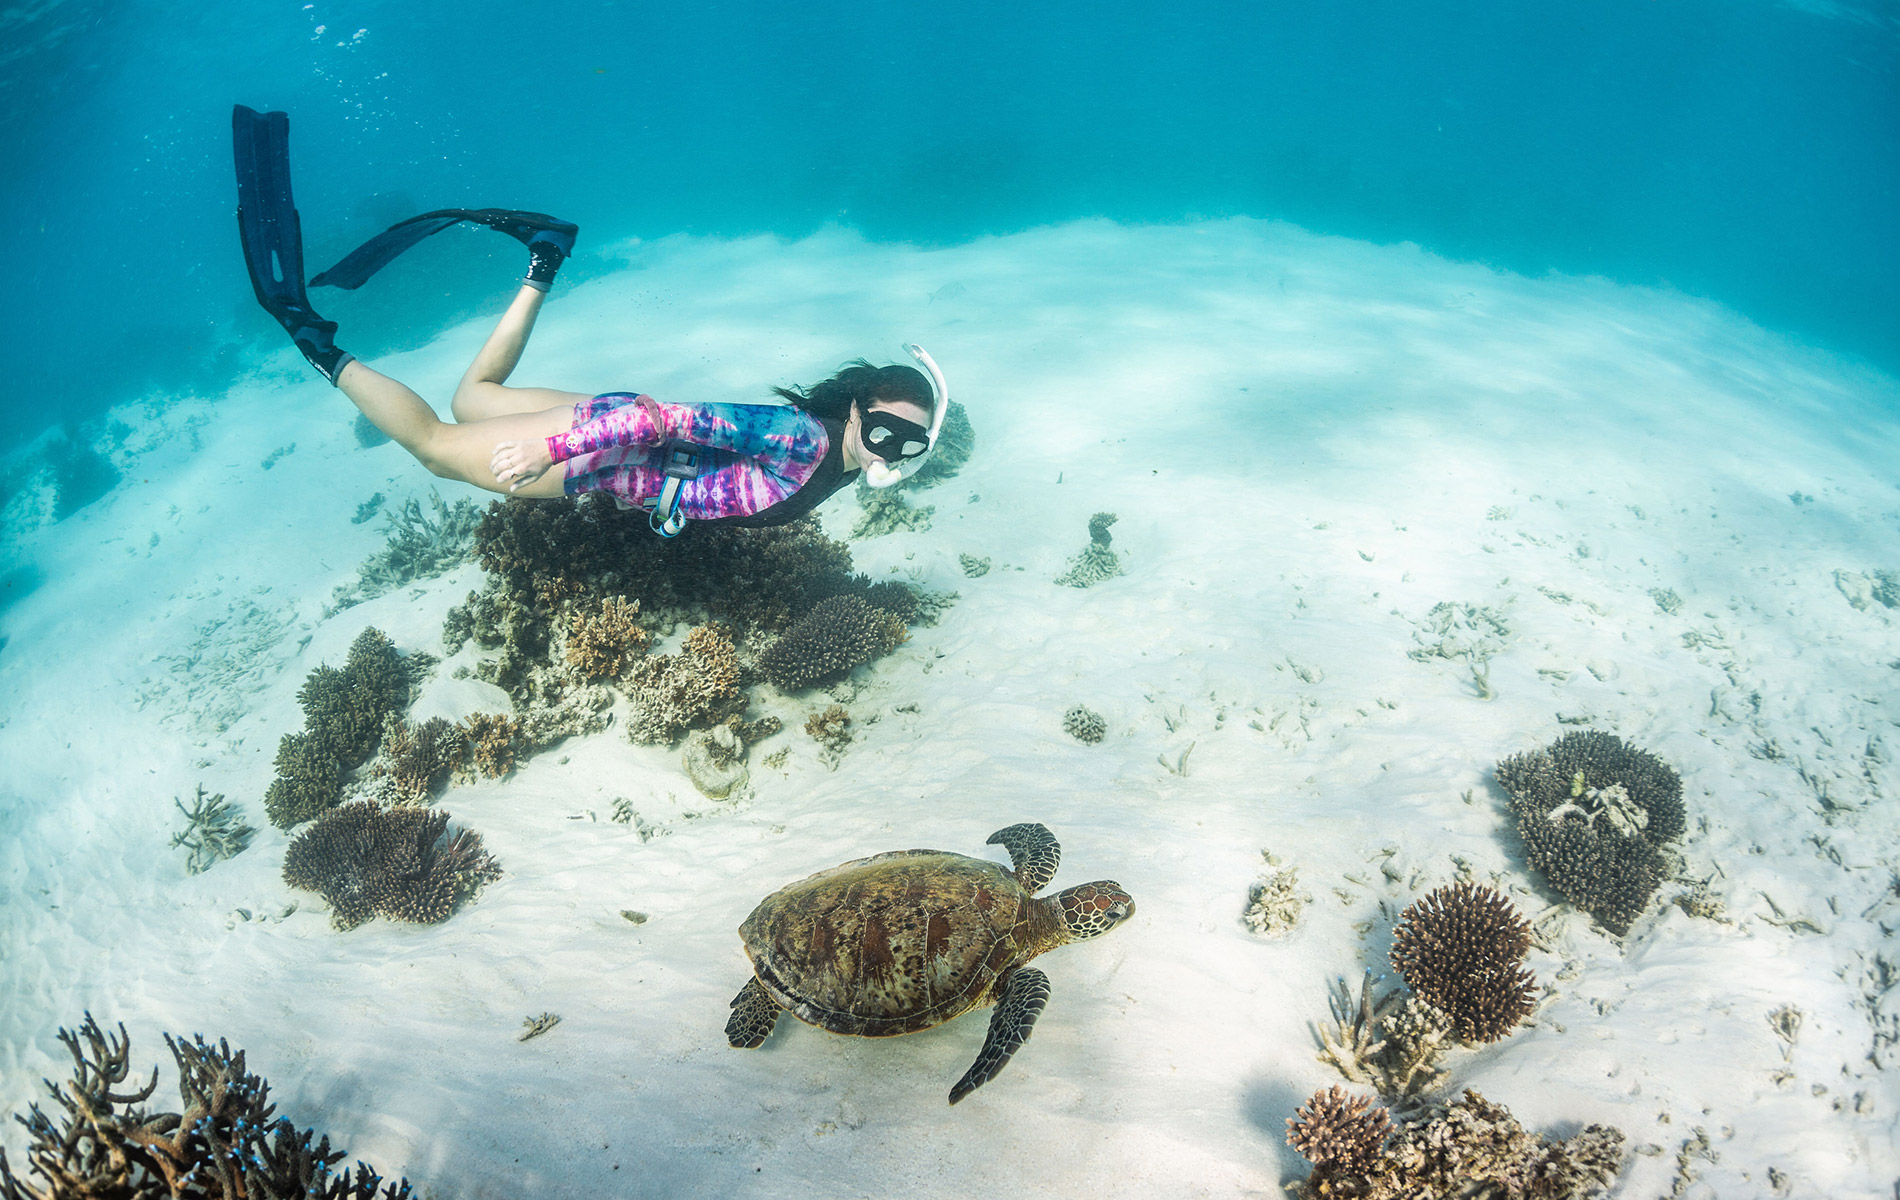 Jo swimming with a turtle